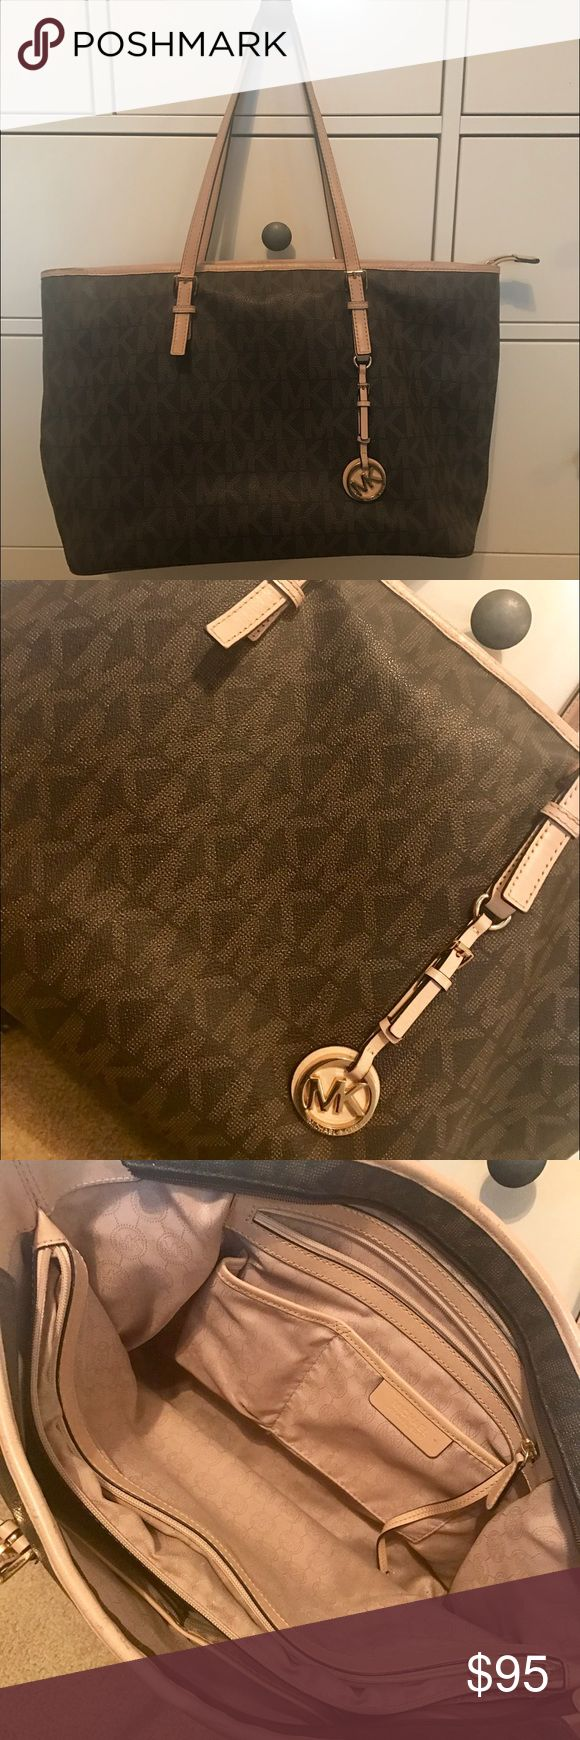 Michael Kors Handbag Authentic used Michael Kors purse, bought from actual Michael Kors Store not off-price retail store like TJ Maxx, etc. Michael Kors Bags Totes